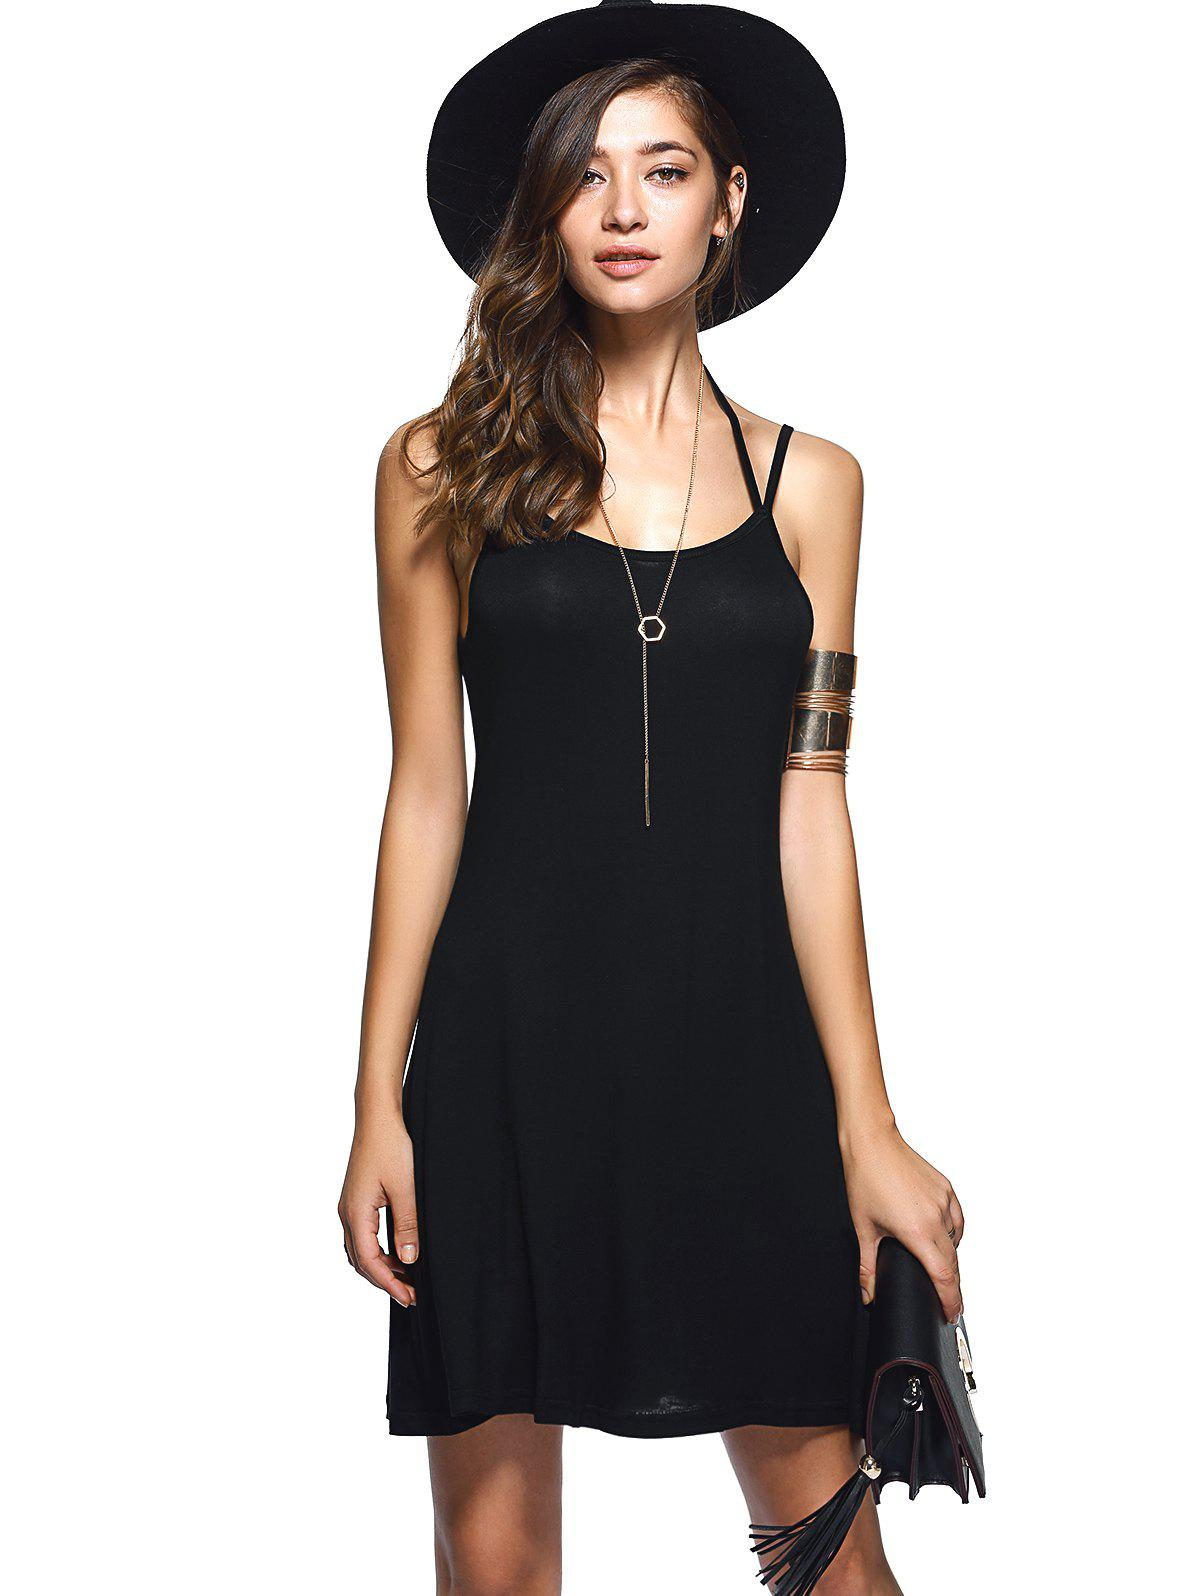 Spaghetti Strap Backless Casual Short Summer Dress - BLACK S